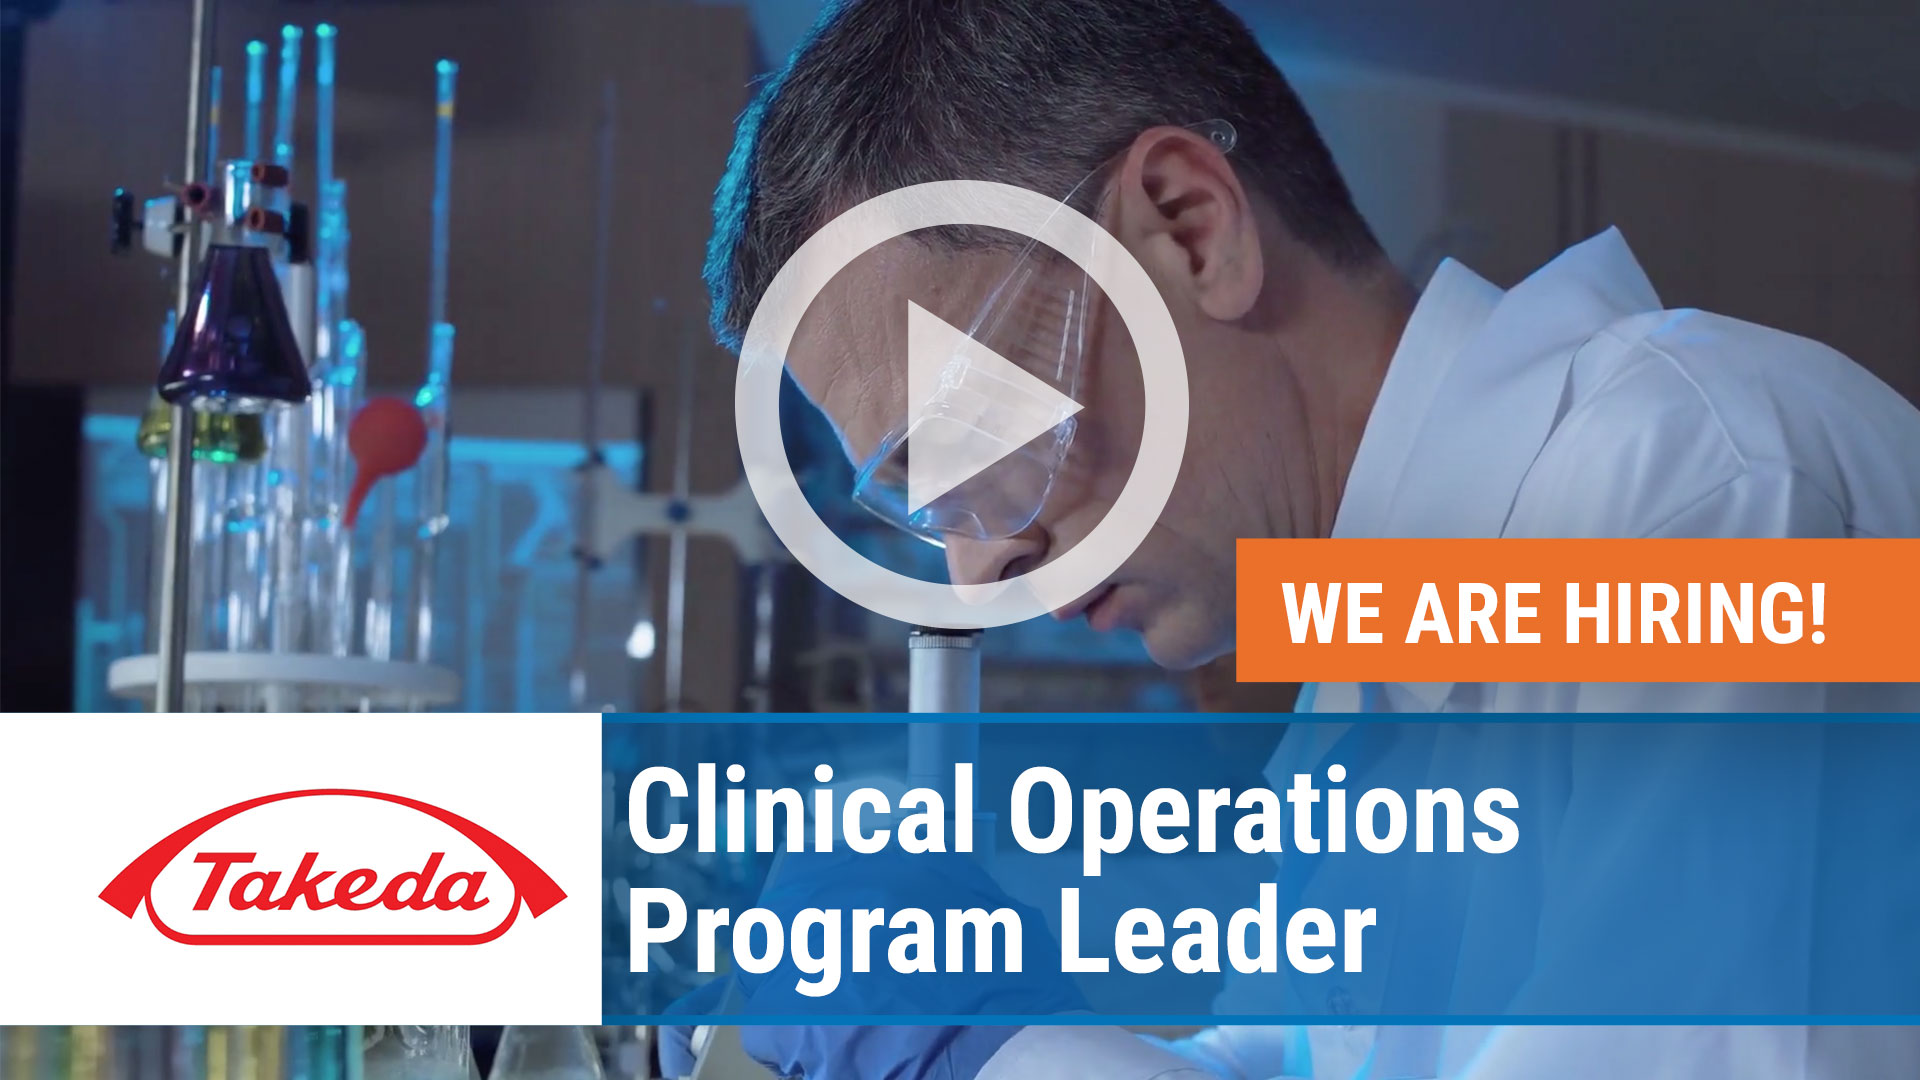 Watch our careers video for available job opening Clinical Operations Program Leader in Cambridge,  MA